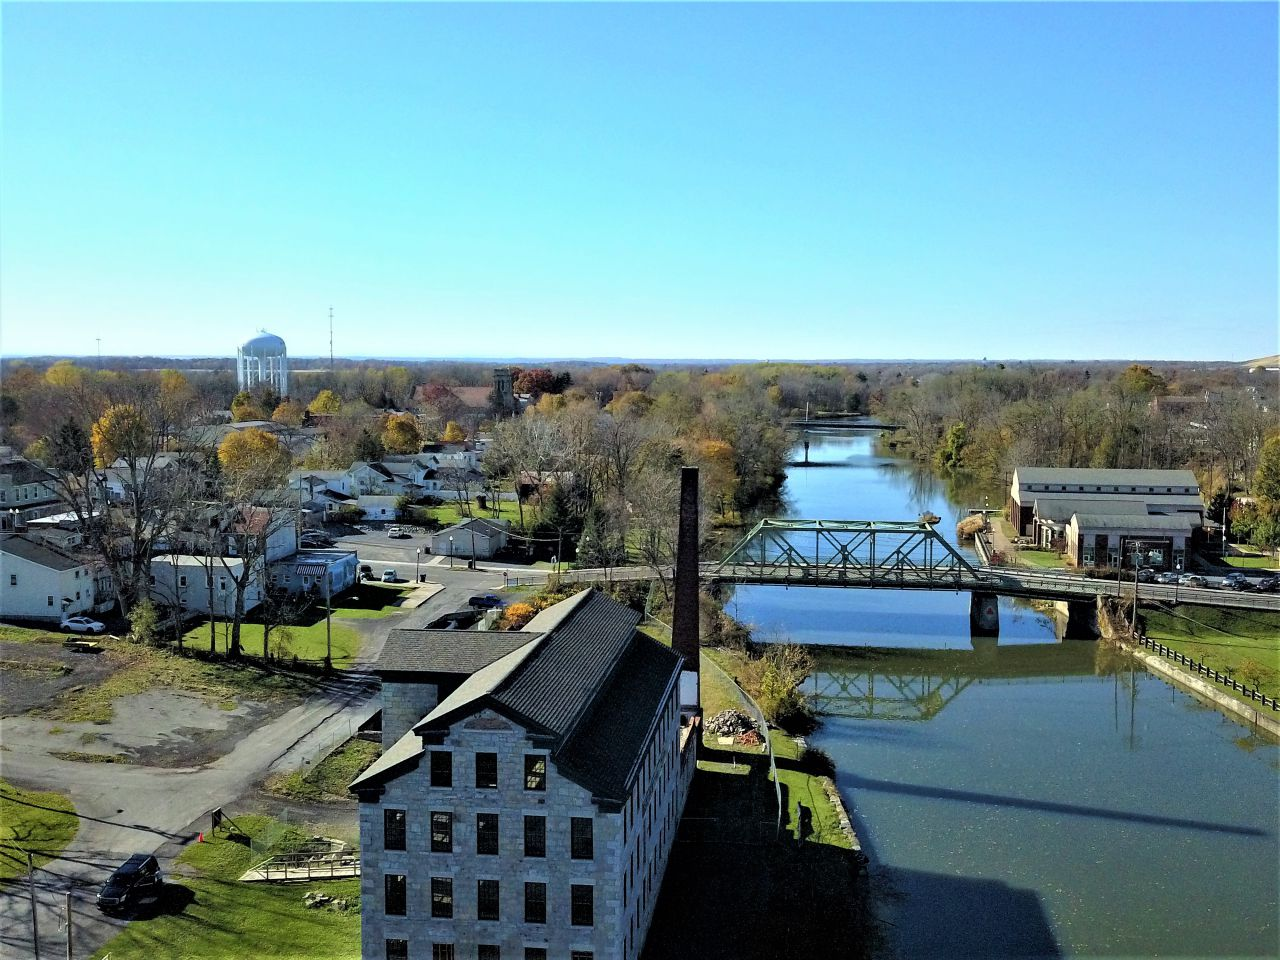 Historic look from above in Seneca Falls (photo)